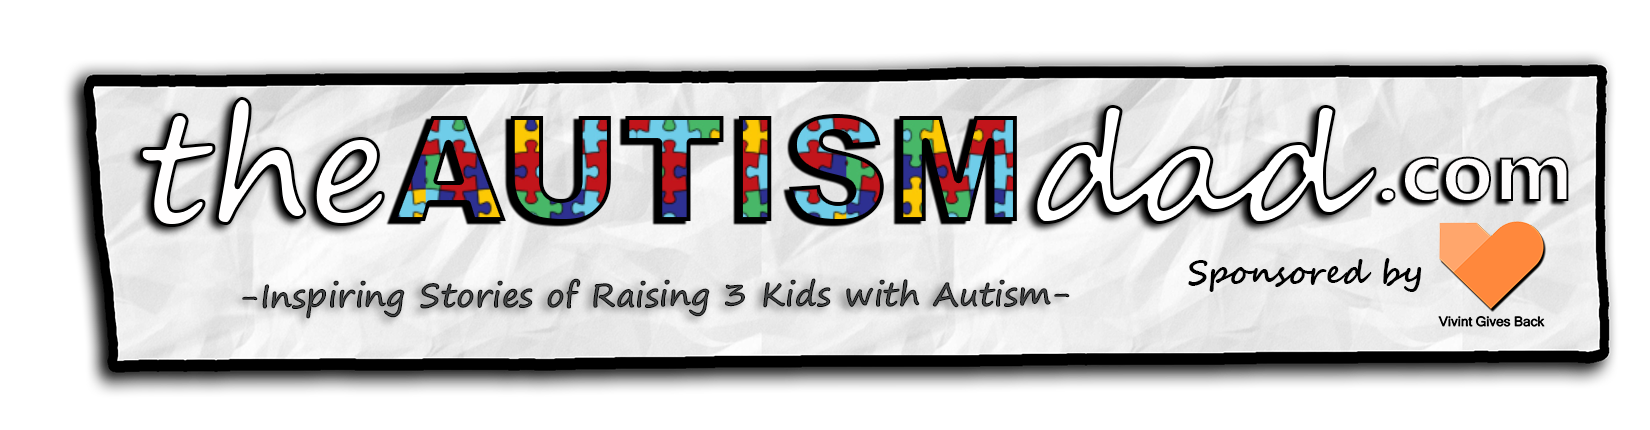 With #AutismAwareness month just around the corner, here's a few important things to think about